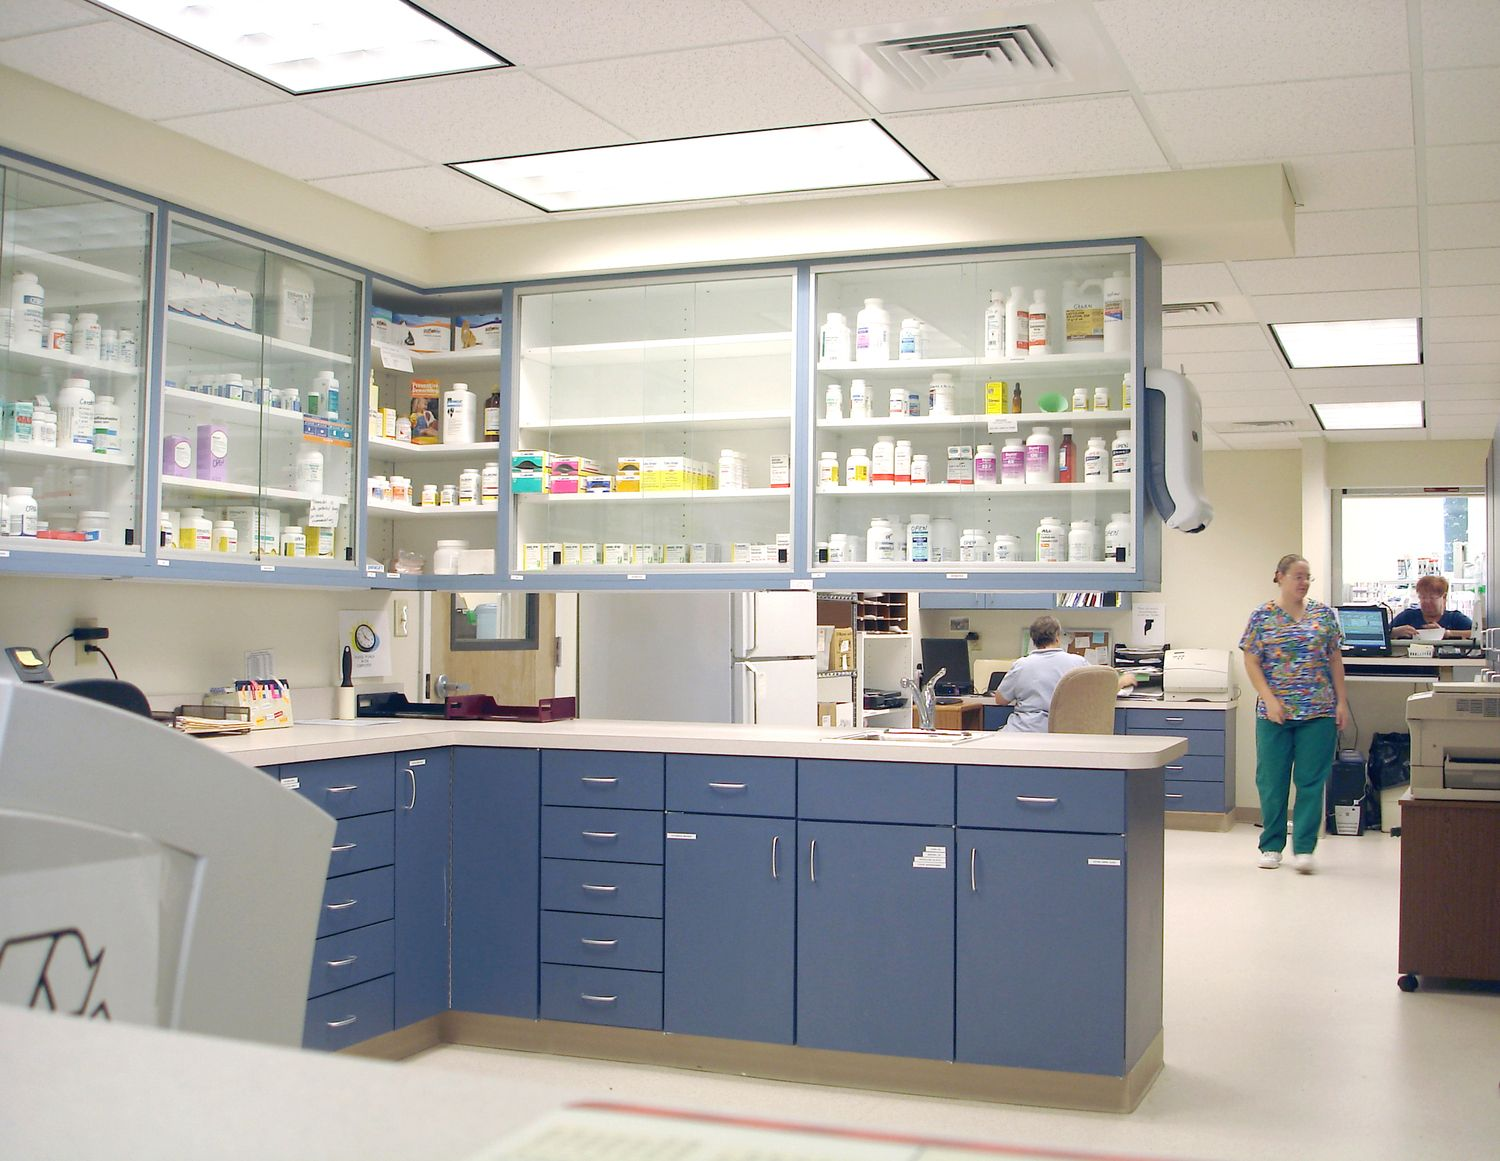 Glass Fronted Pharmacy Cabinet Clinic Design Hospital Interior